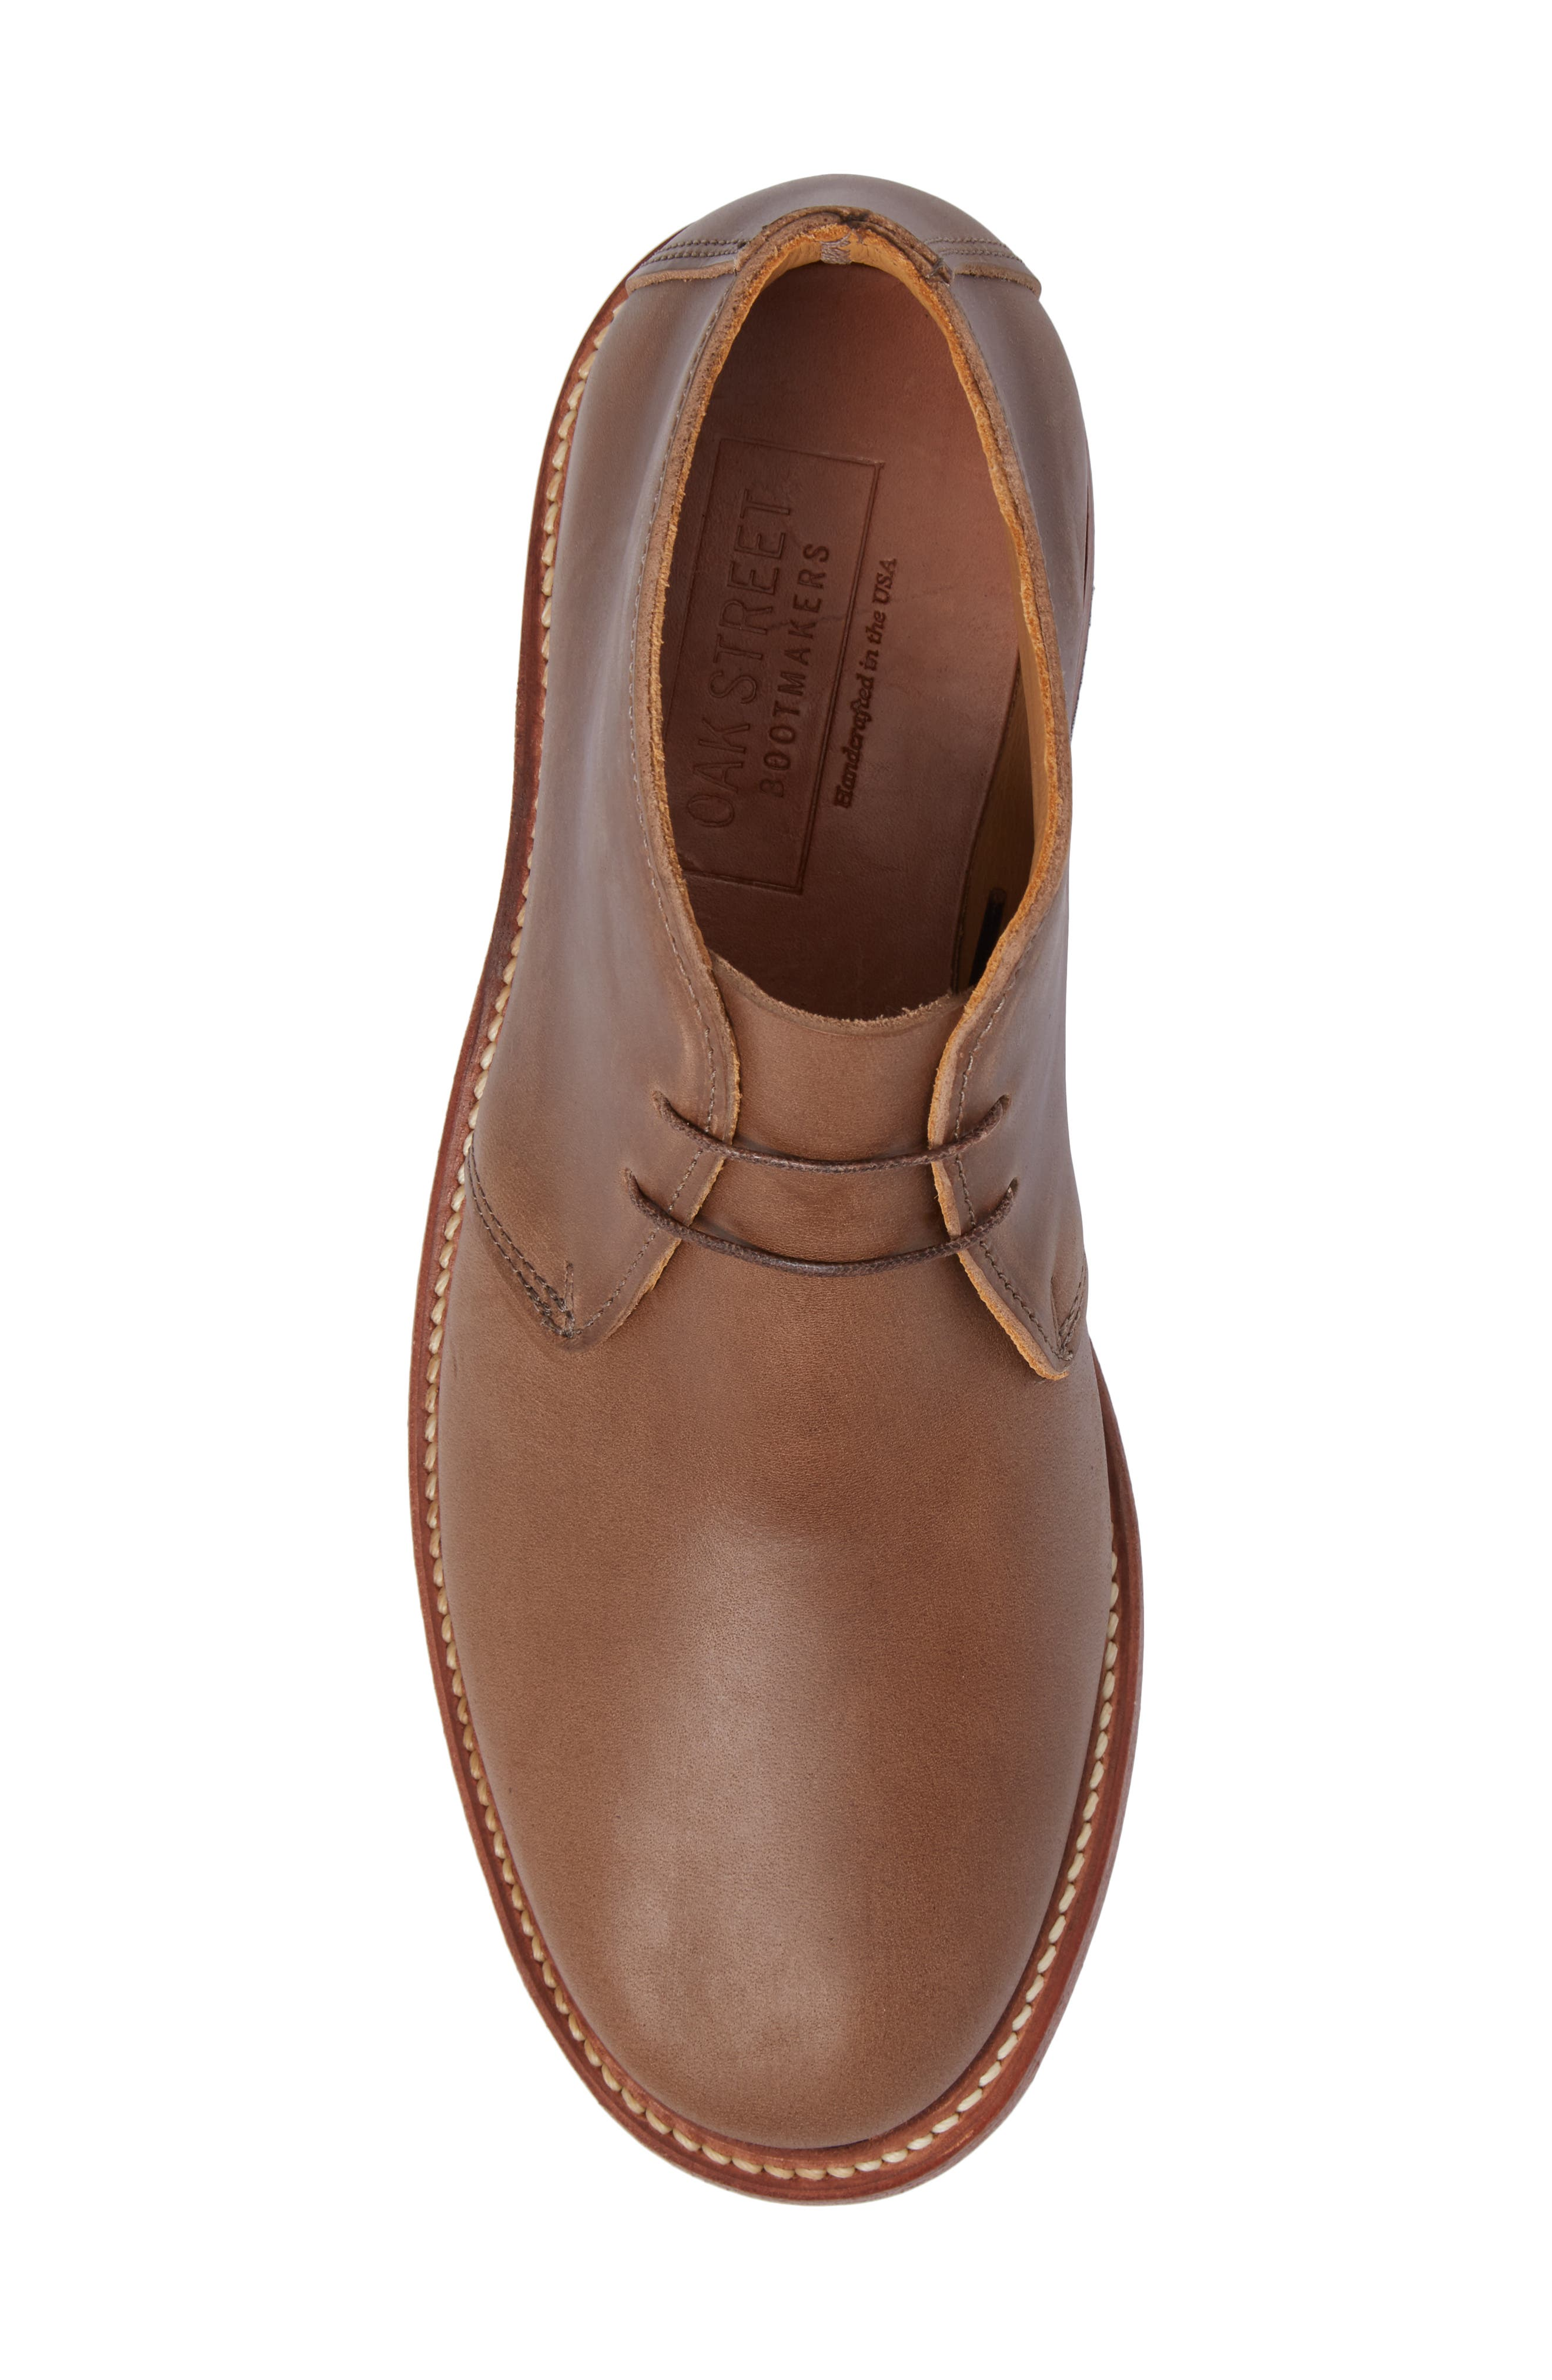 Campus Chukka Boot,                             Alternate thumbnail 5, color,                             Natural Leather